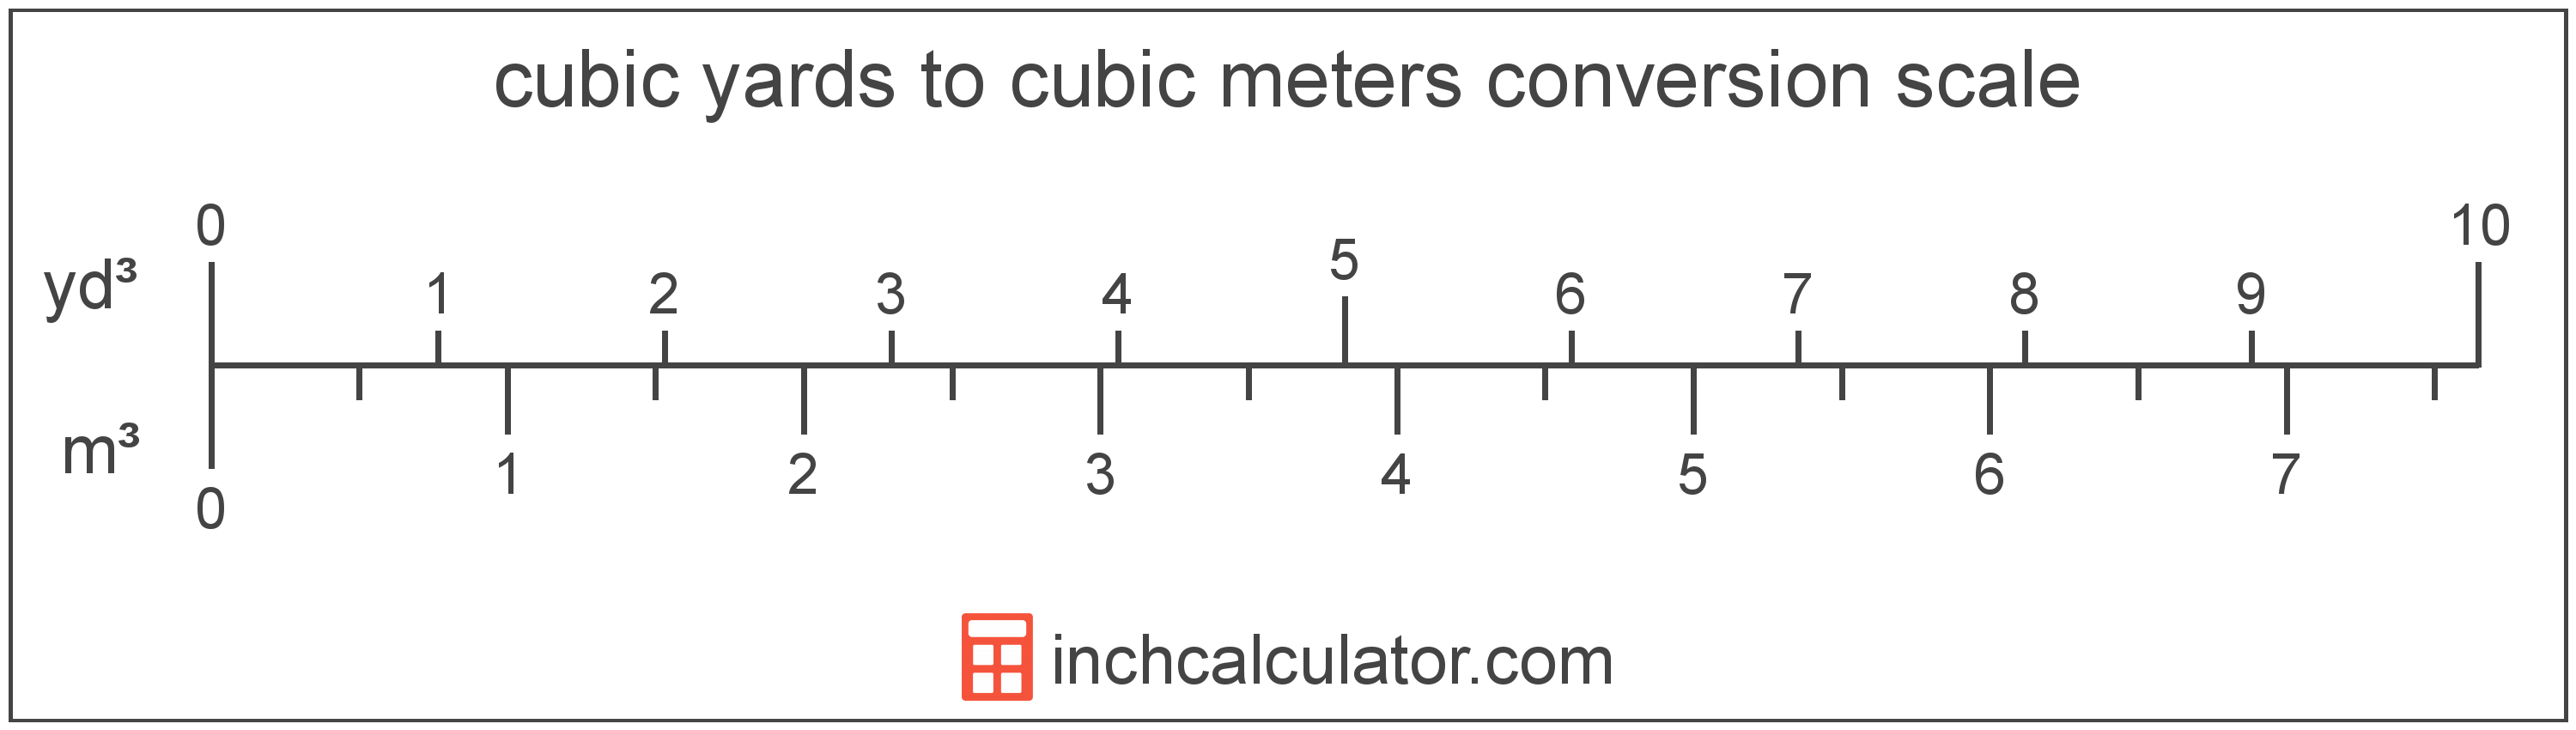 conversion scale showing cubic meters and equivalent cubic yards volume values